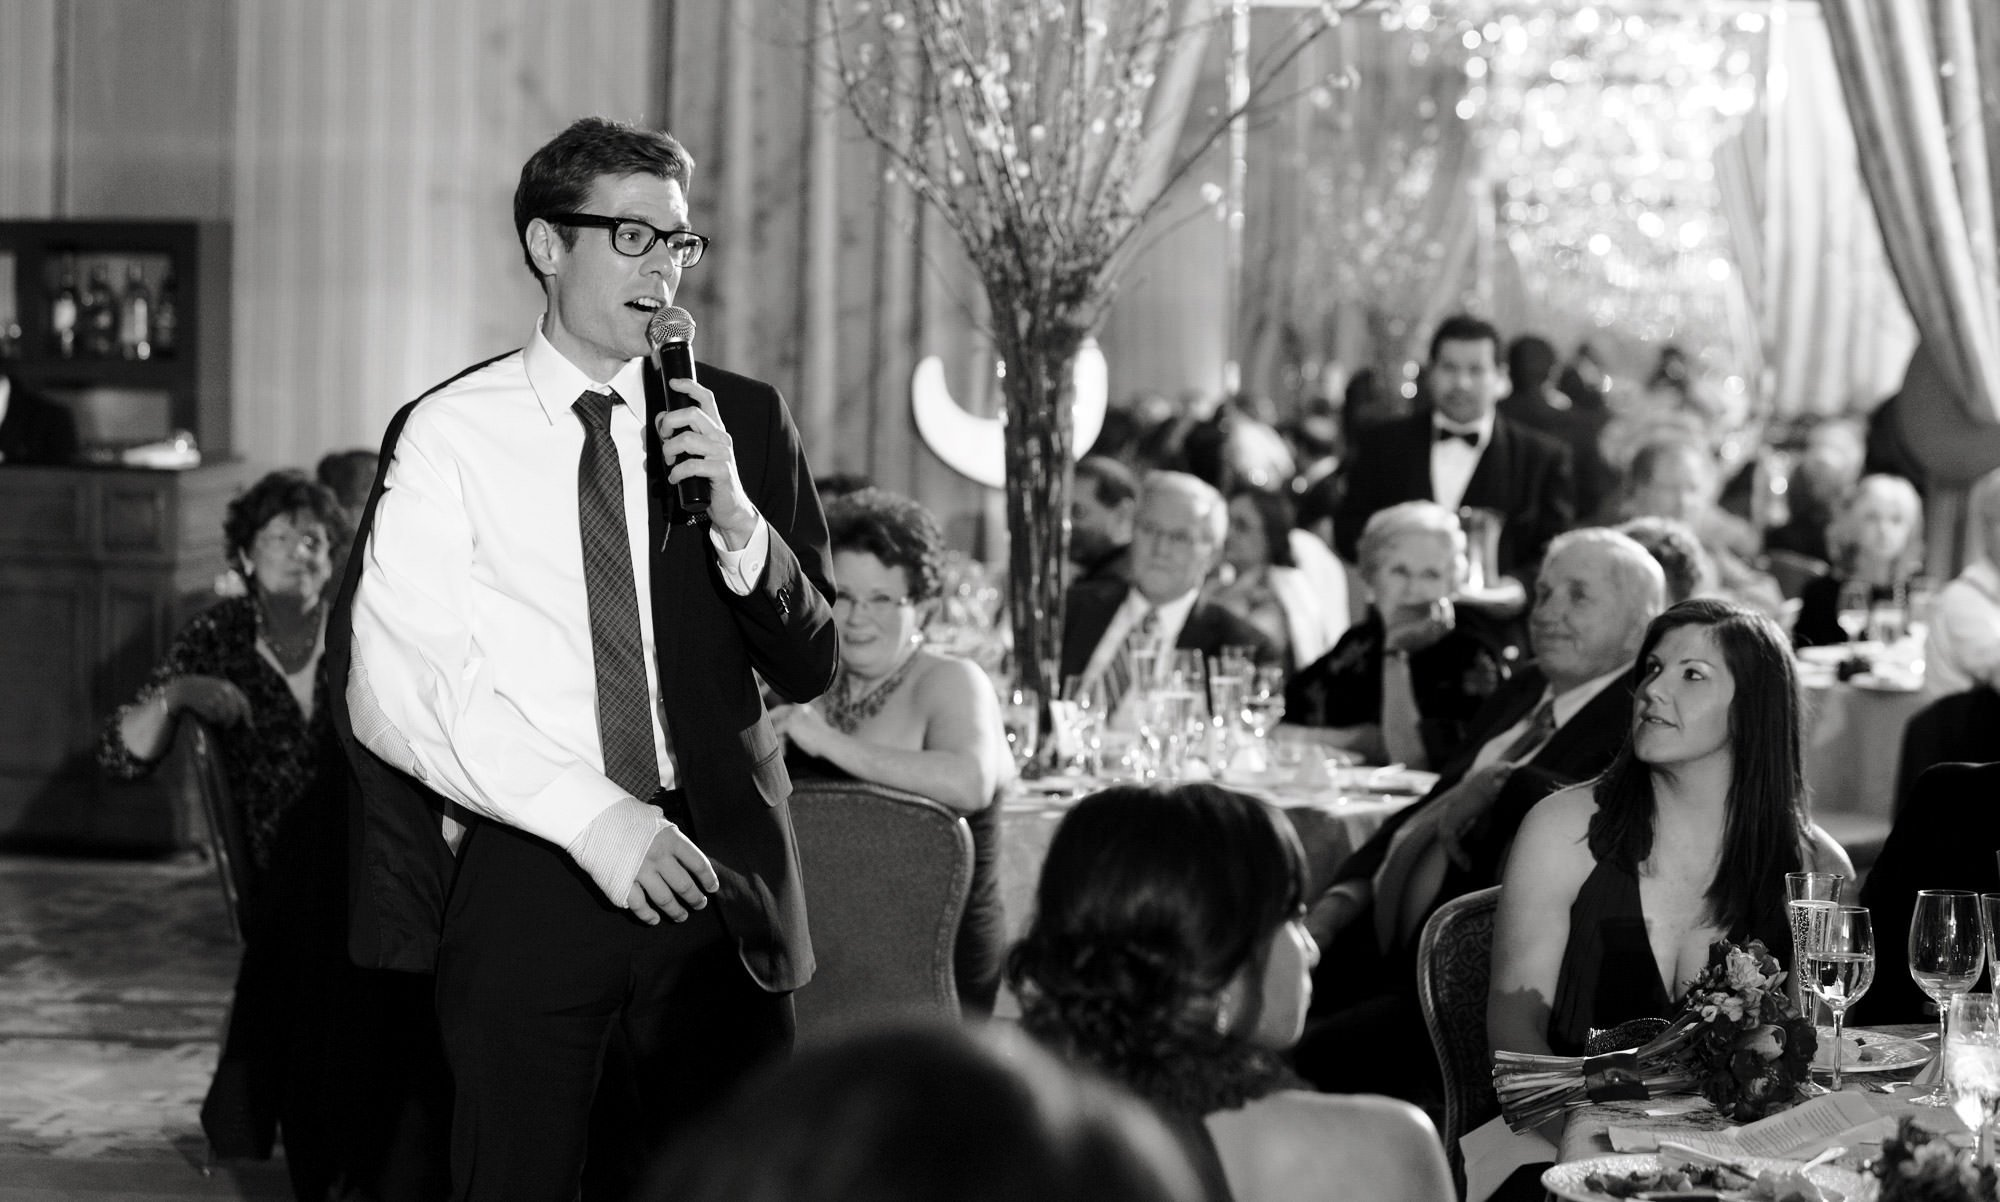 Four Seasons DC Wedding  I  The best man gives a toast during the reception.